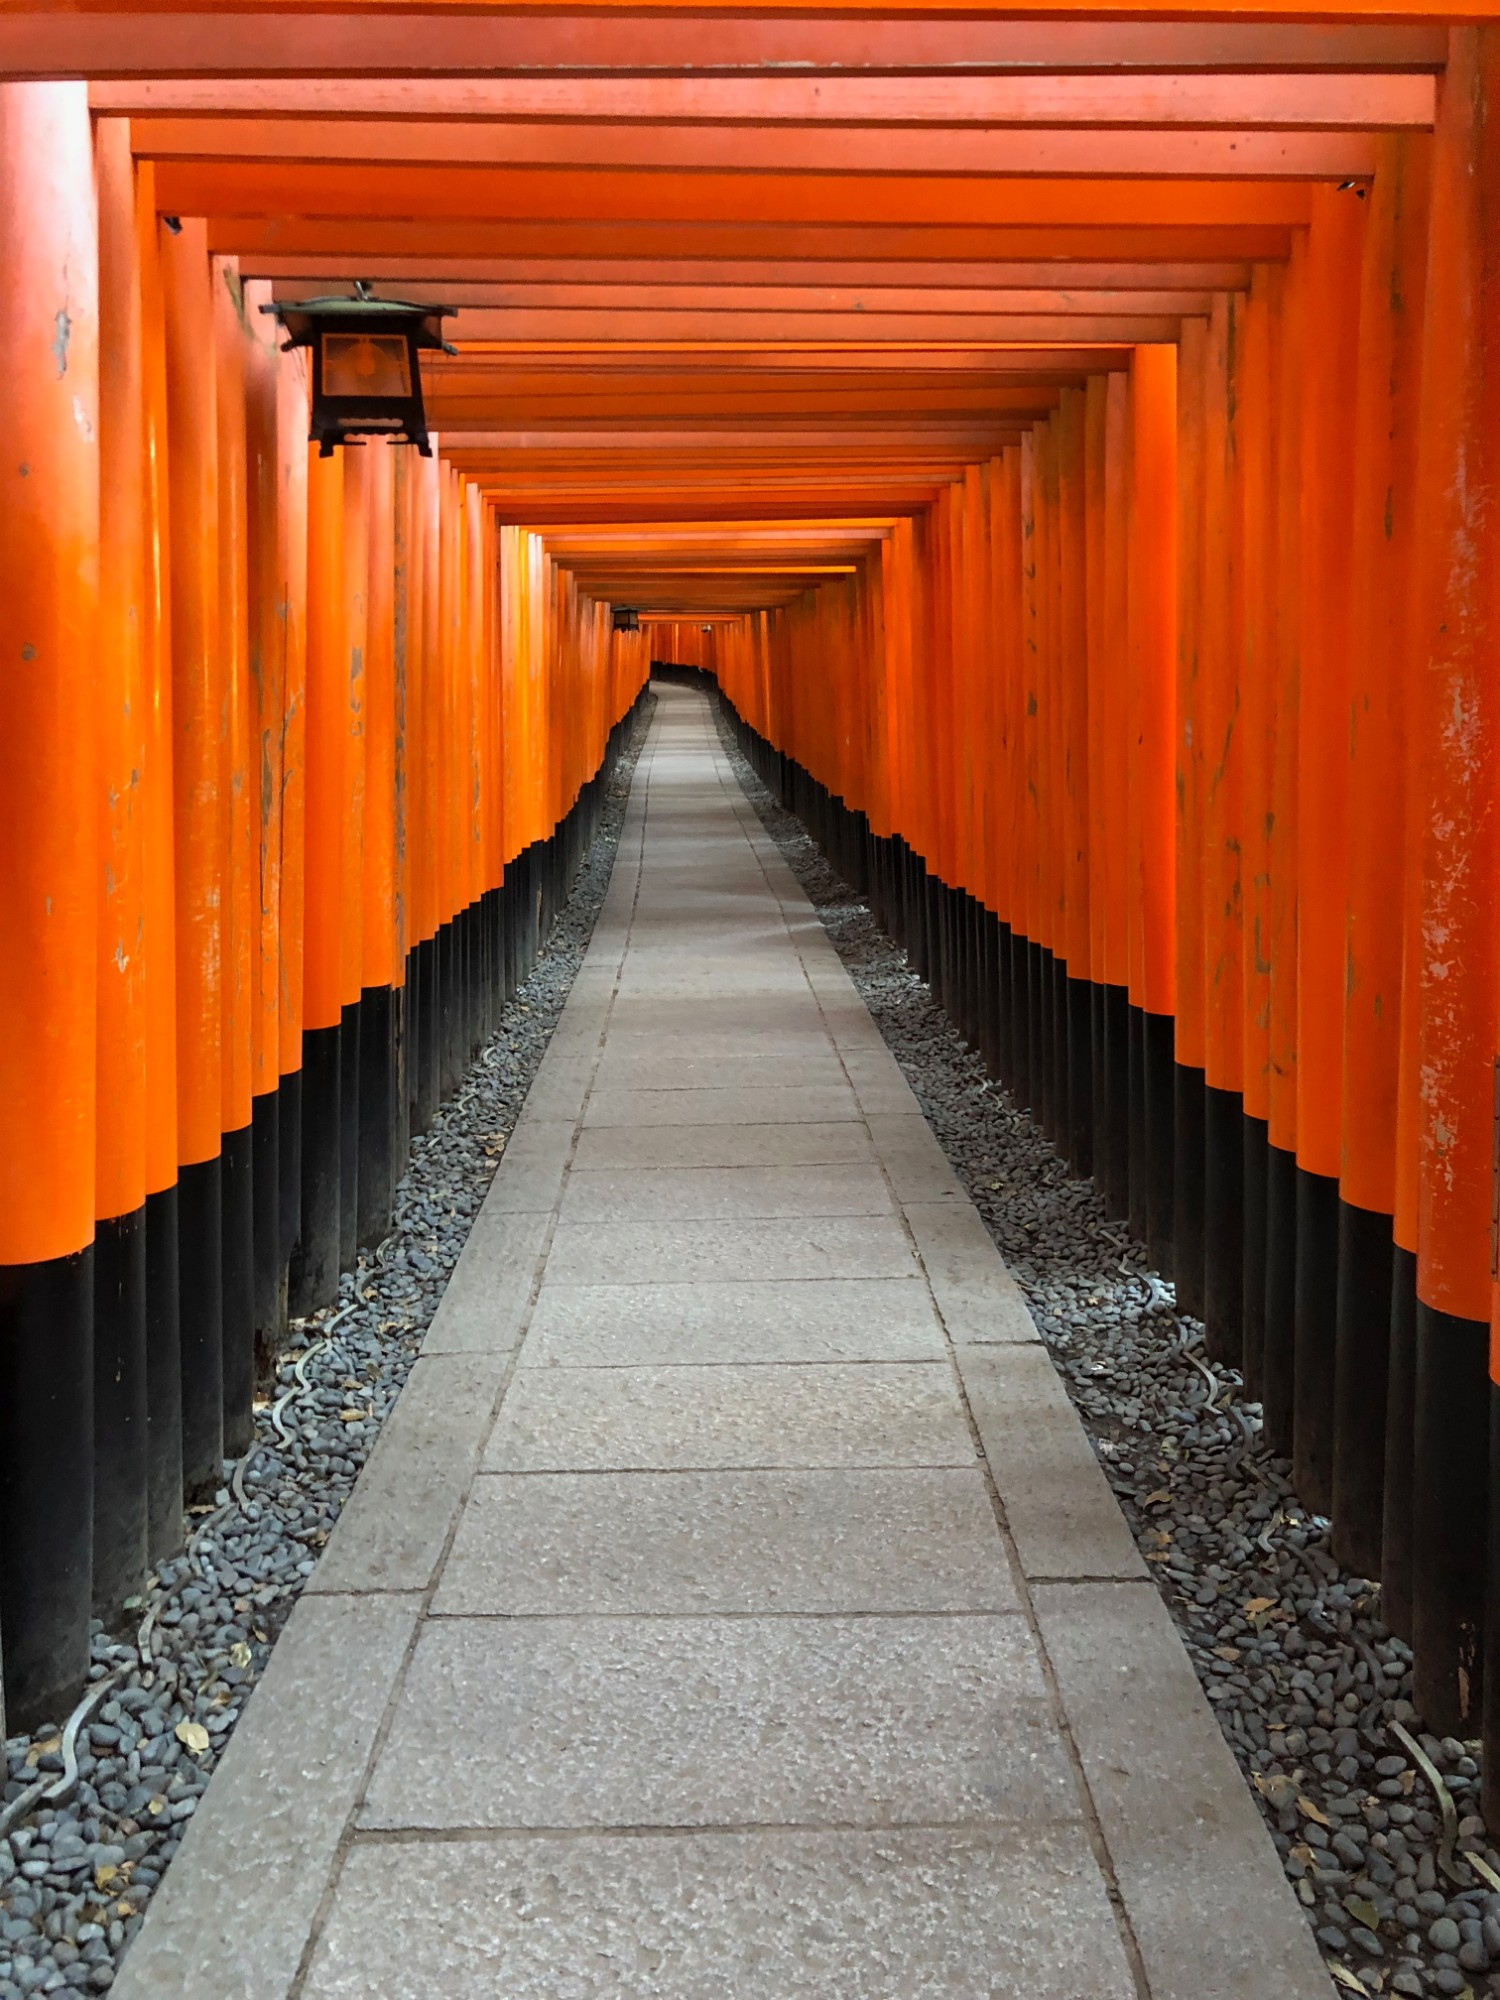 Hundreds of Torii gates at Fushimi Inari-Taisha shrine in Kyoto honor the Shinto god of rice Inari. Each gate has been donated by a Japanese business or group with the hopes of being blessed with success.